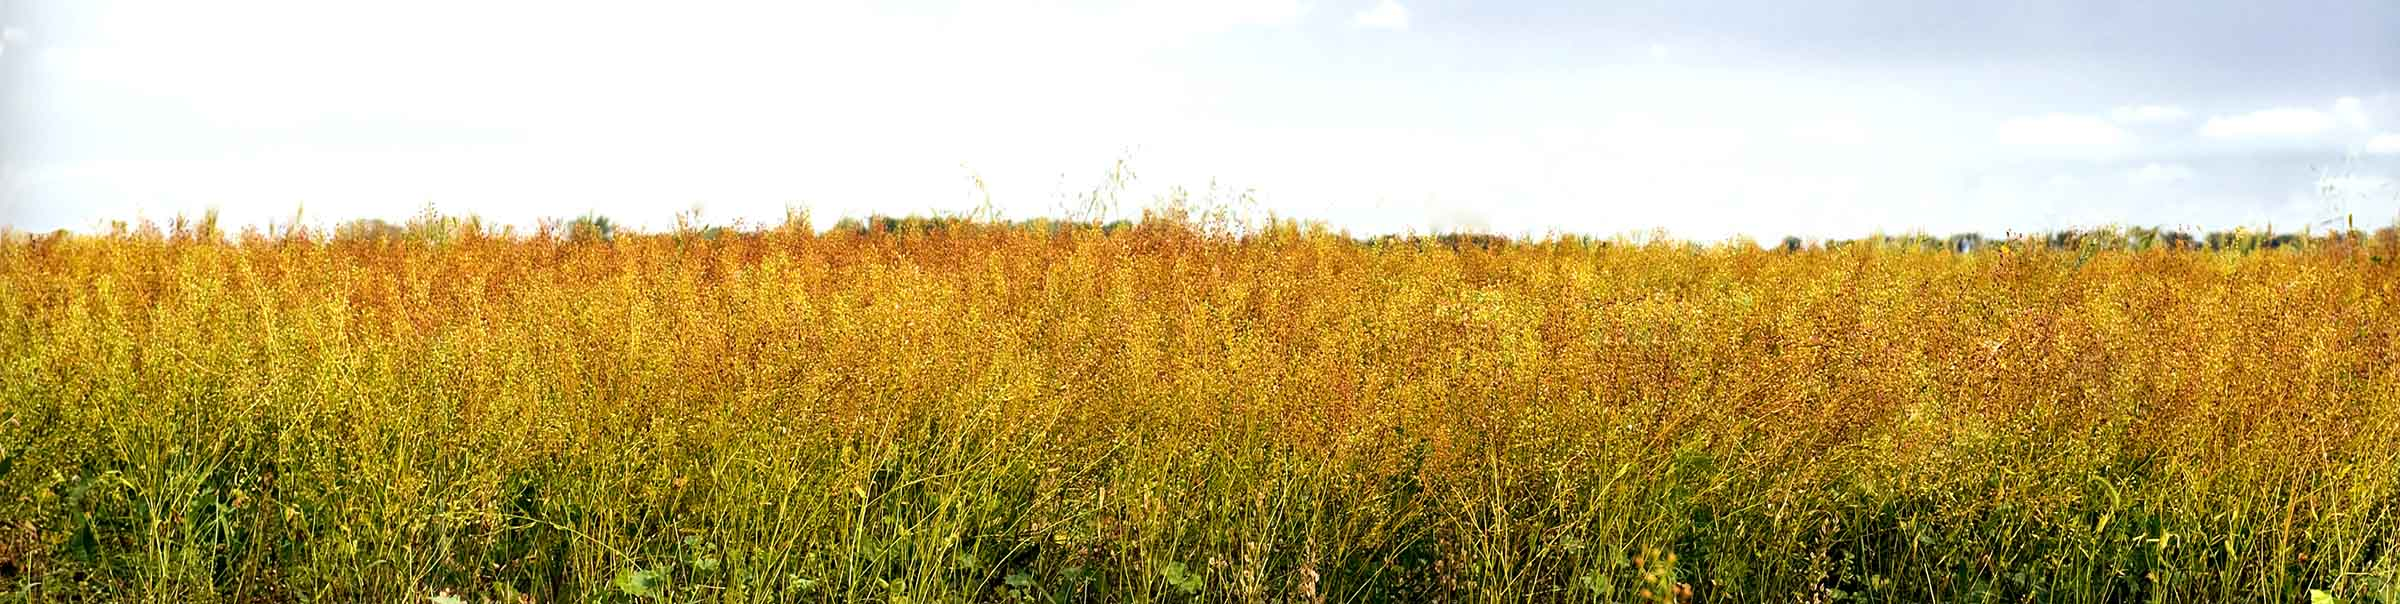 Field of camelina